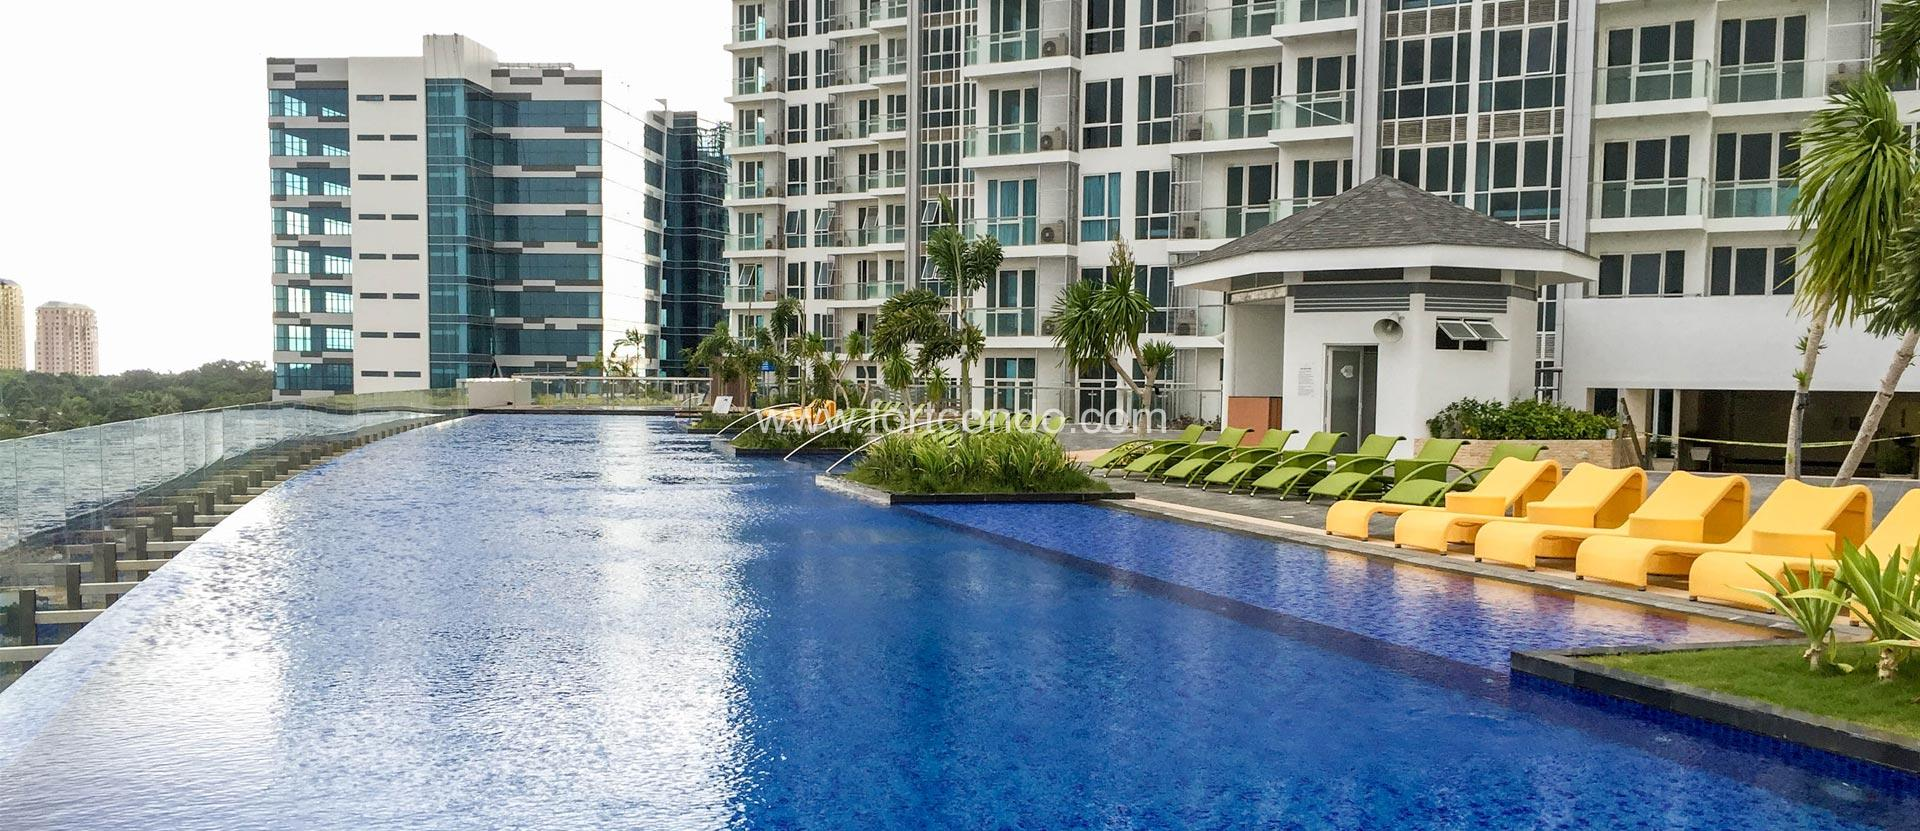 pool amenties 8 newtown boulevard cebu condos for. 8 Newtown Boulevard   Mactan Cebu Beach Condos For Sale